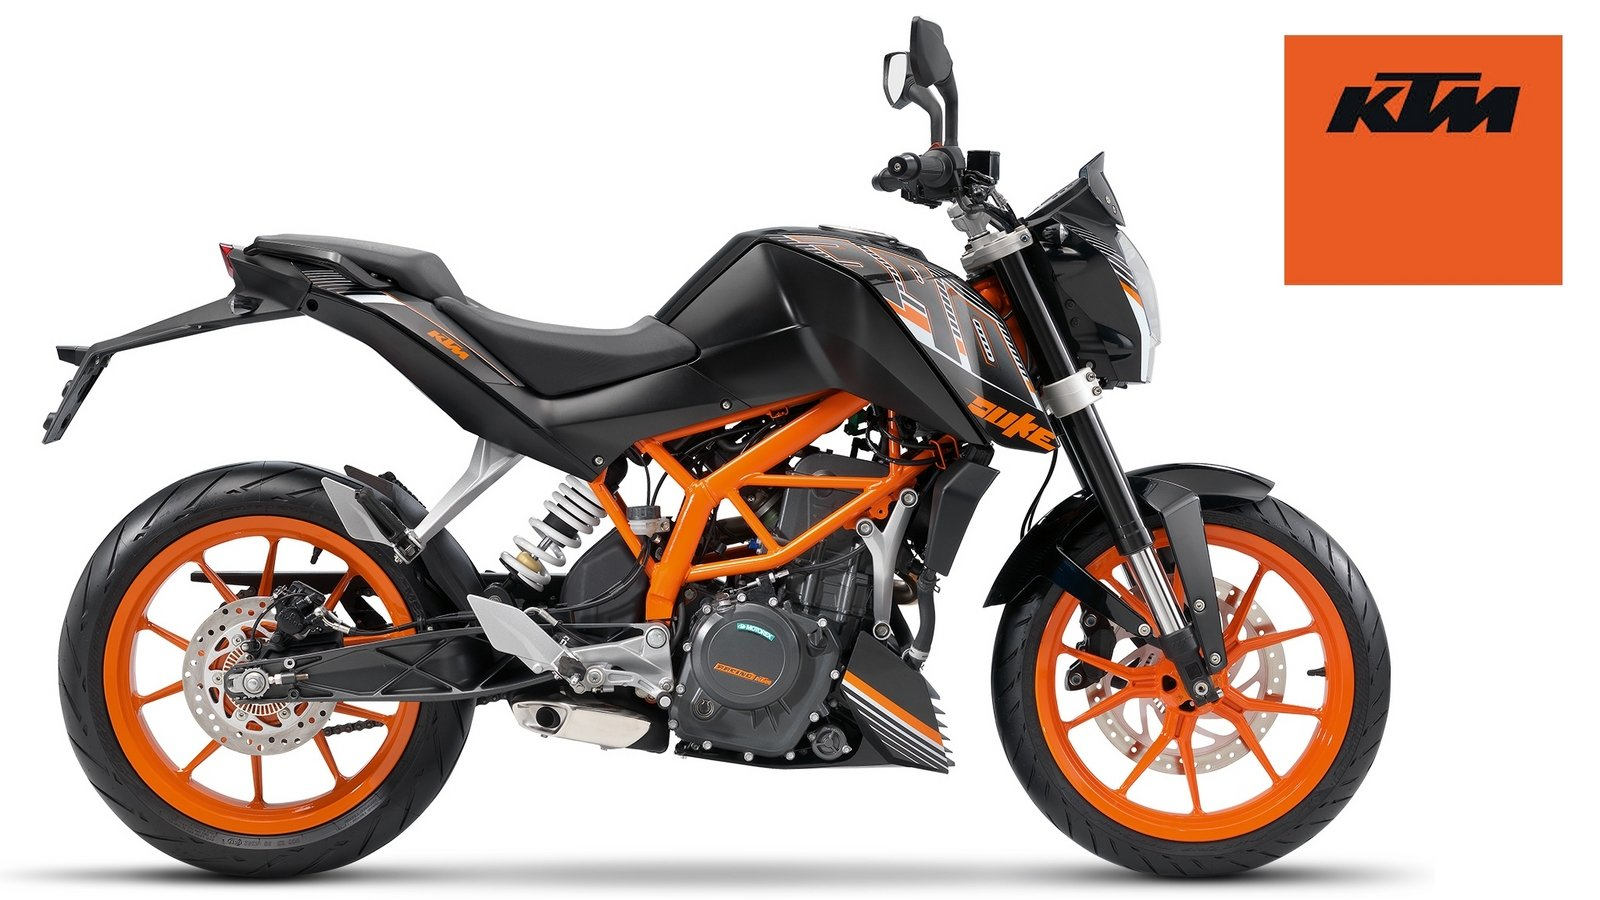 2015 2016 ktm 390 duke picture 663940 motorcycle review top speed. Black Bedroom Furniture Sets. Home Design Ideas